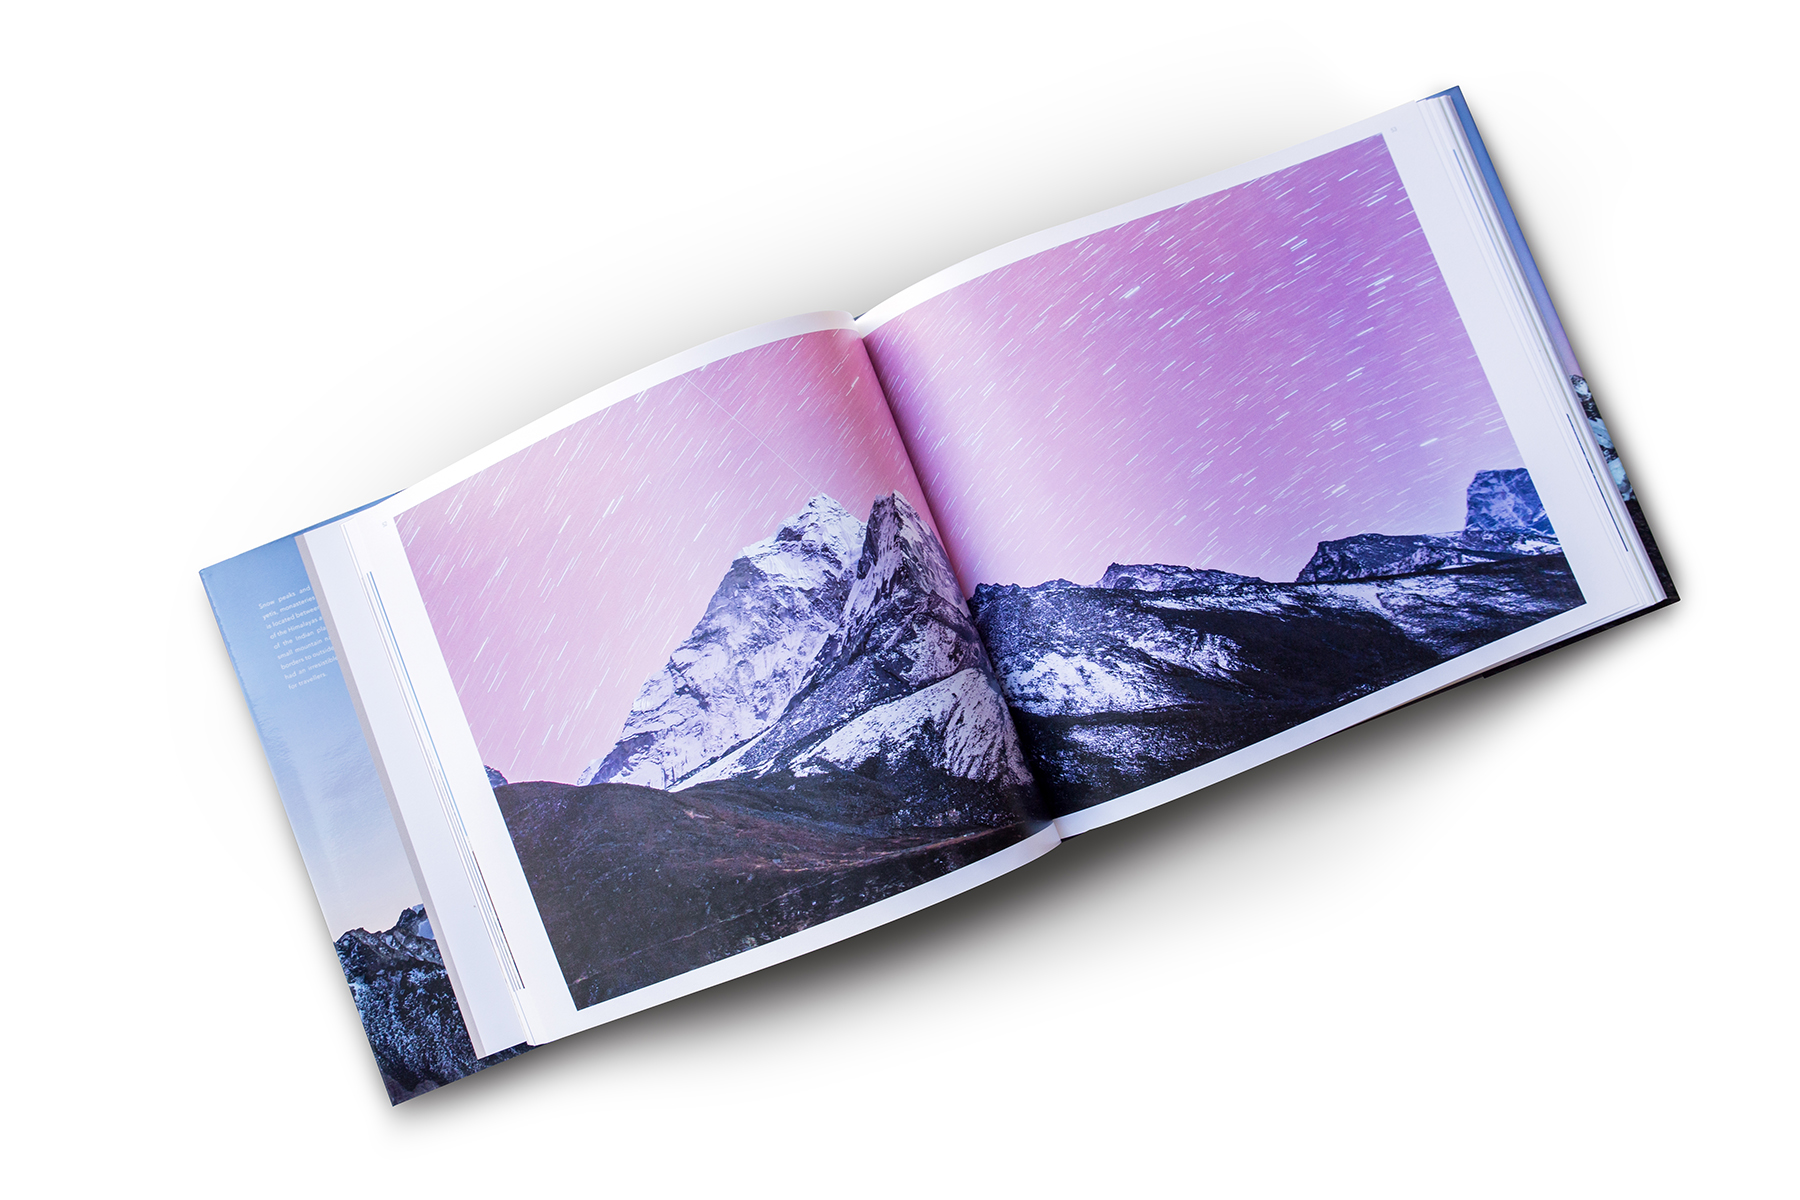 Panorama from the book, star trails above Ama Dablam (seen from Dingboche)